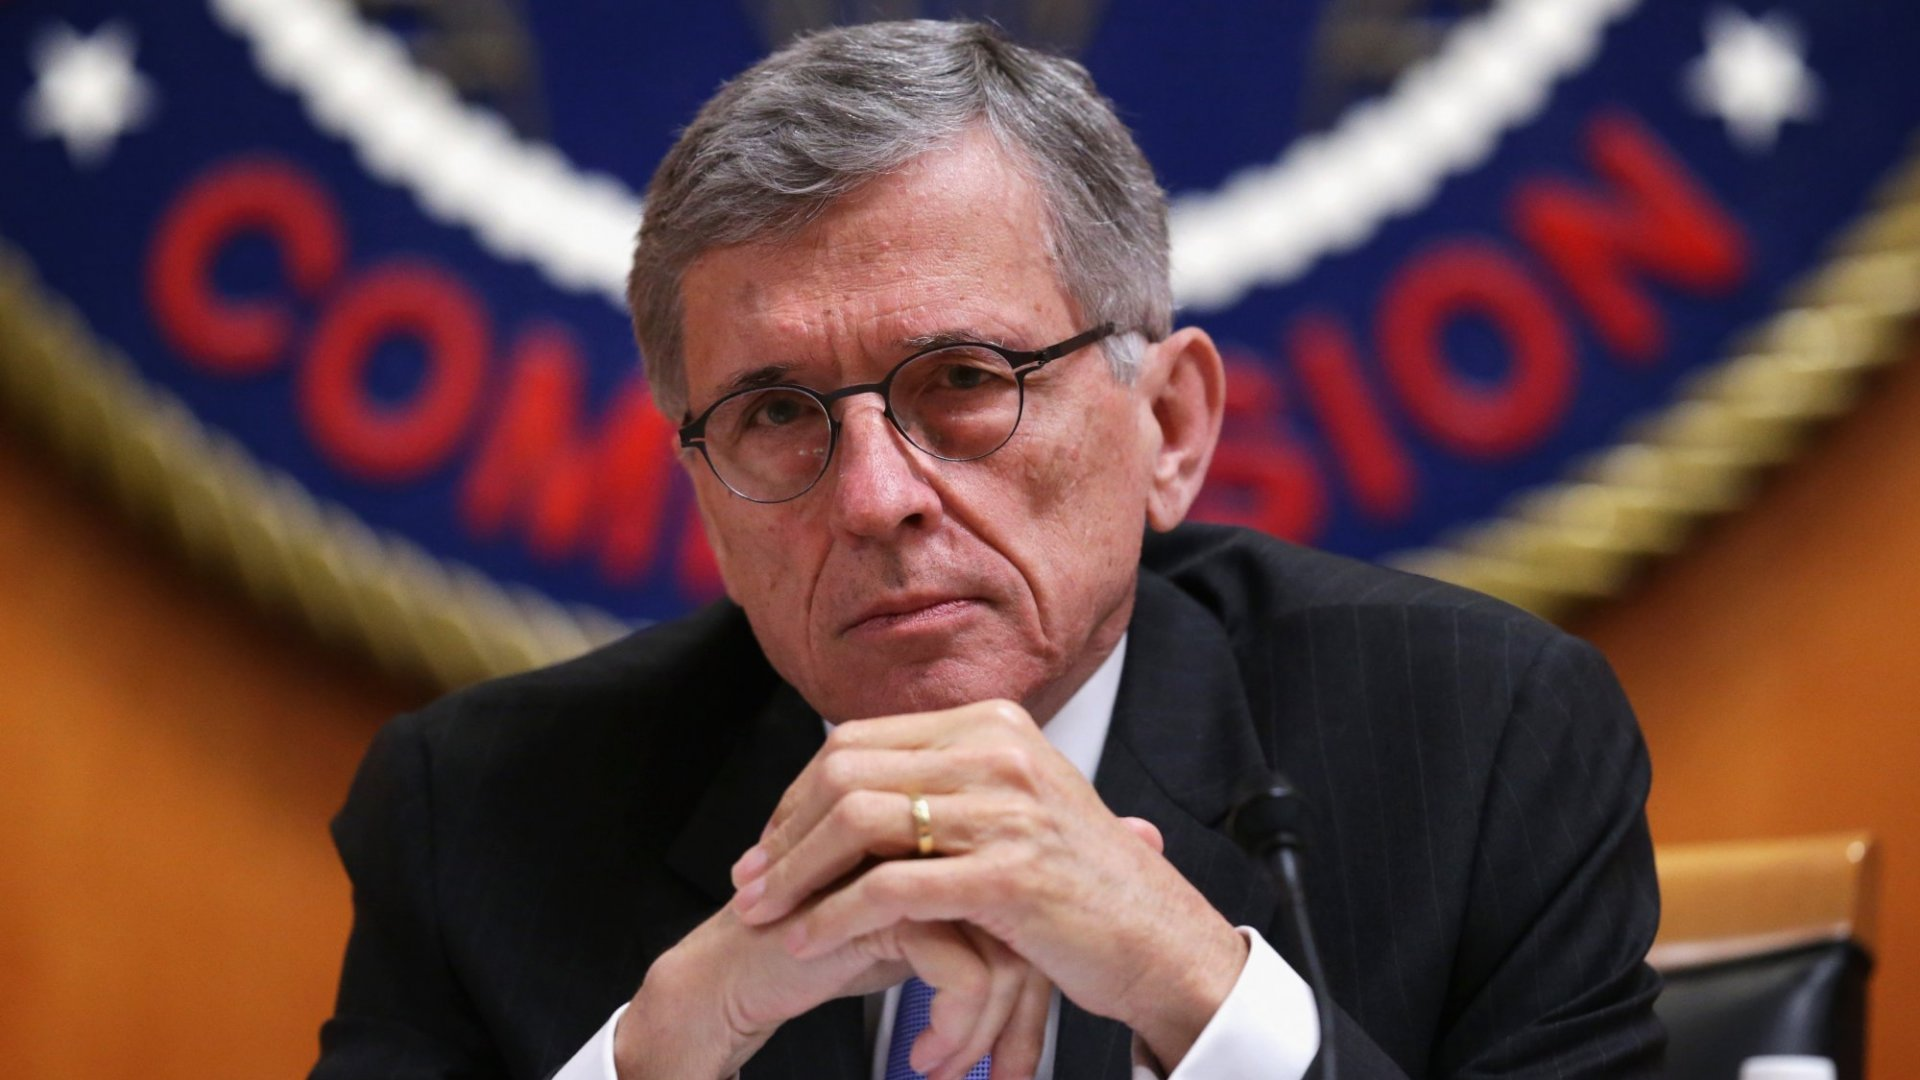 Federal Communications Commission (FCC) Chairman Tom Wheeler. (Photo by Alex Wong/Getty Images)